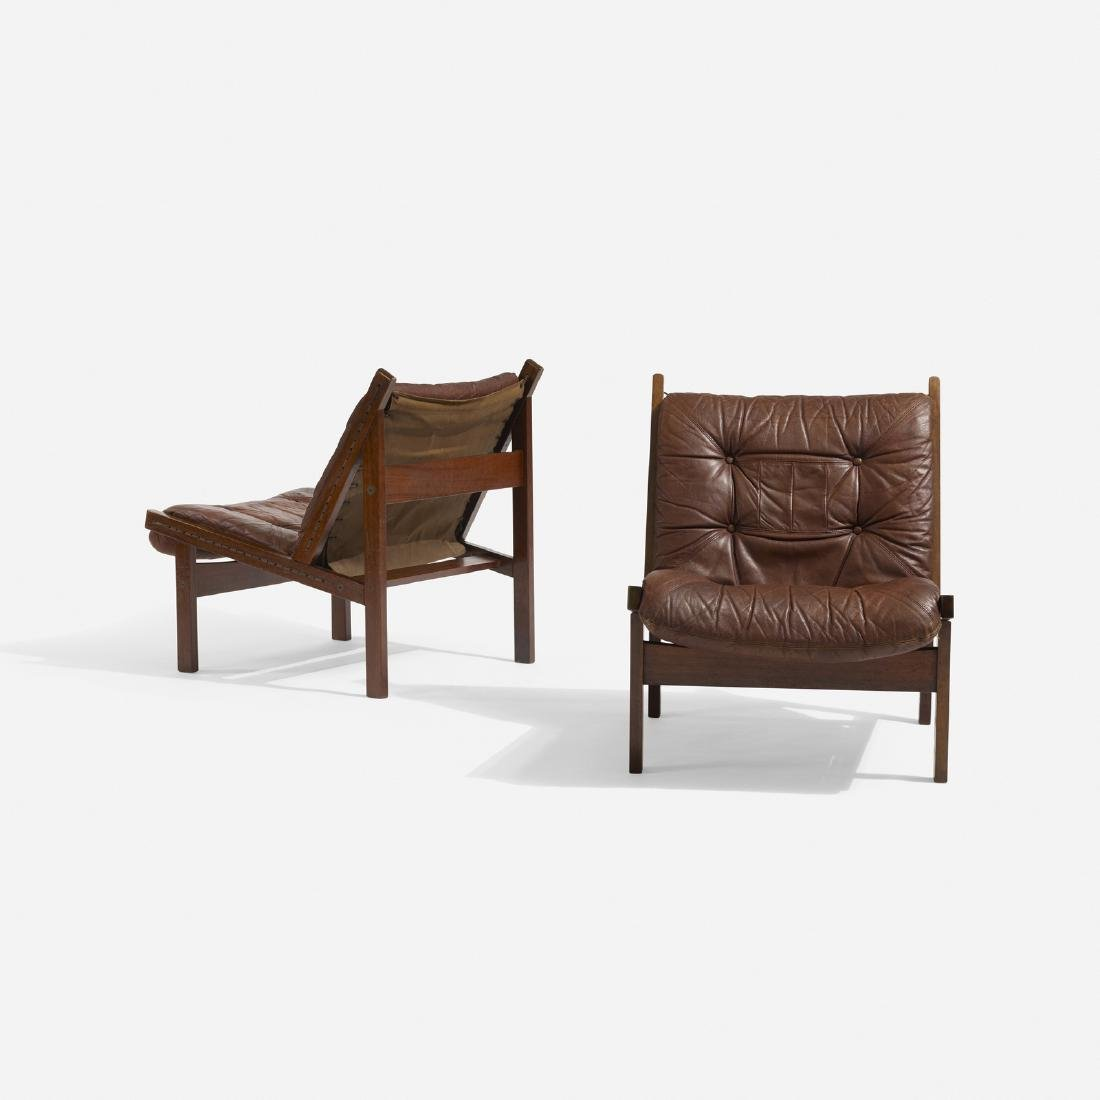 Torbjorn Afdal, lounge chairs, pair